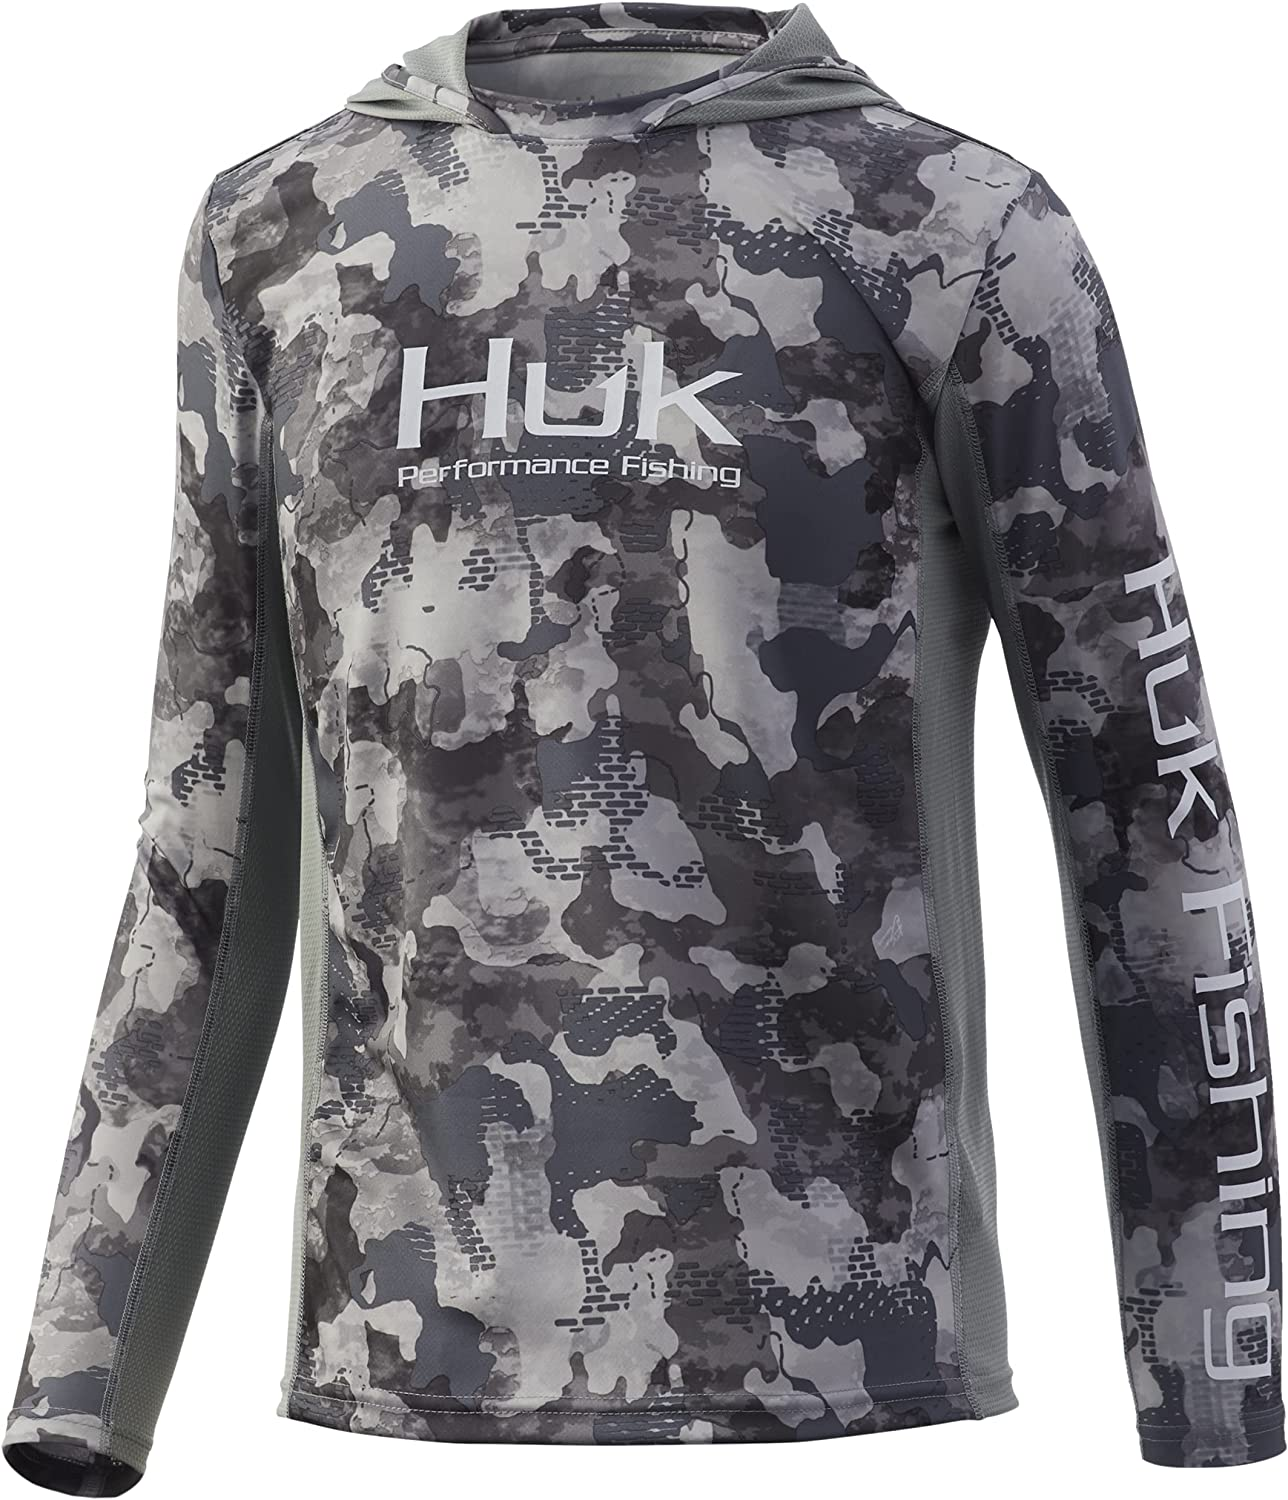 HUK Kids' Icon X Challenge the lowest price Cheap sale of Japan ☆ Long-Sleeve Shirt Hoodie